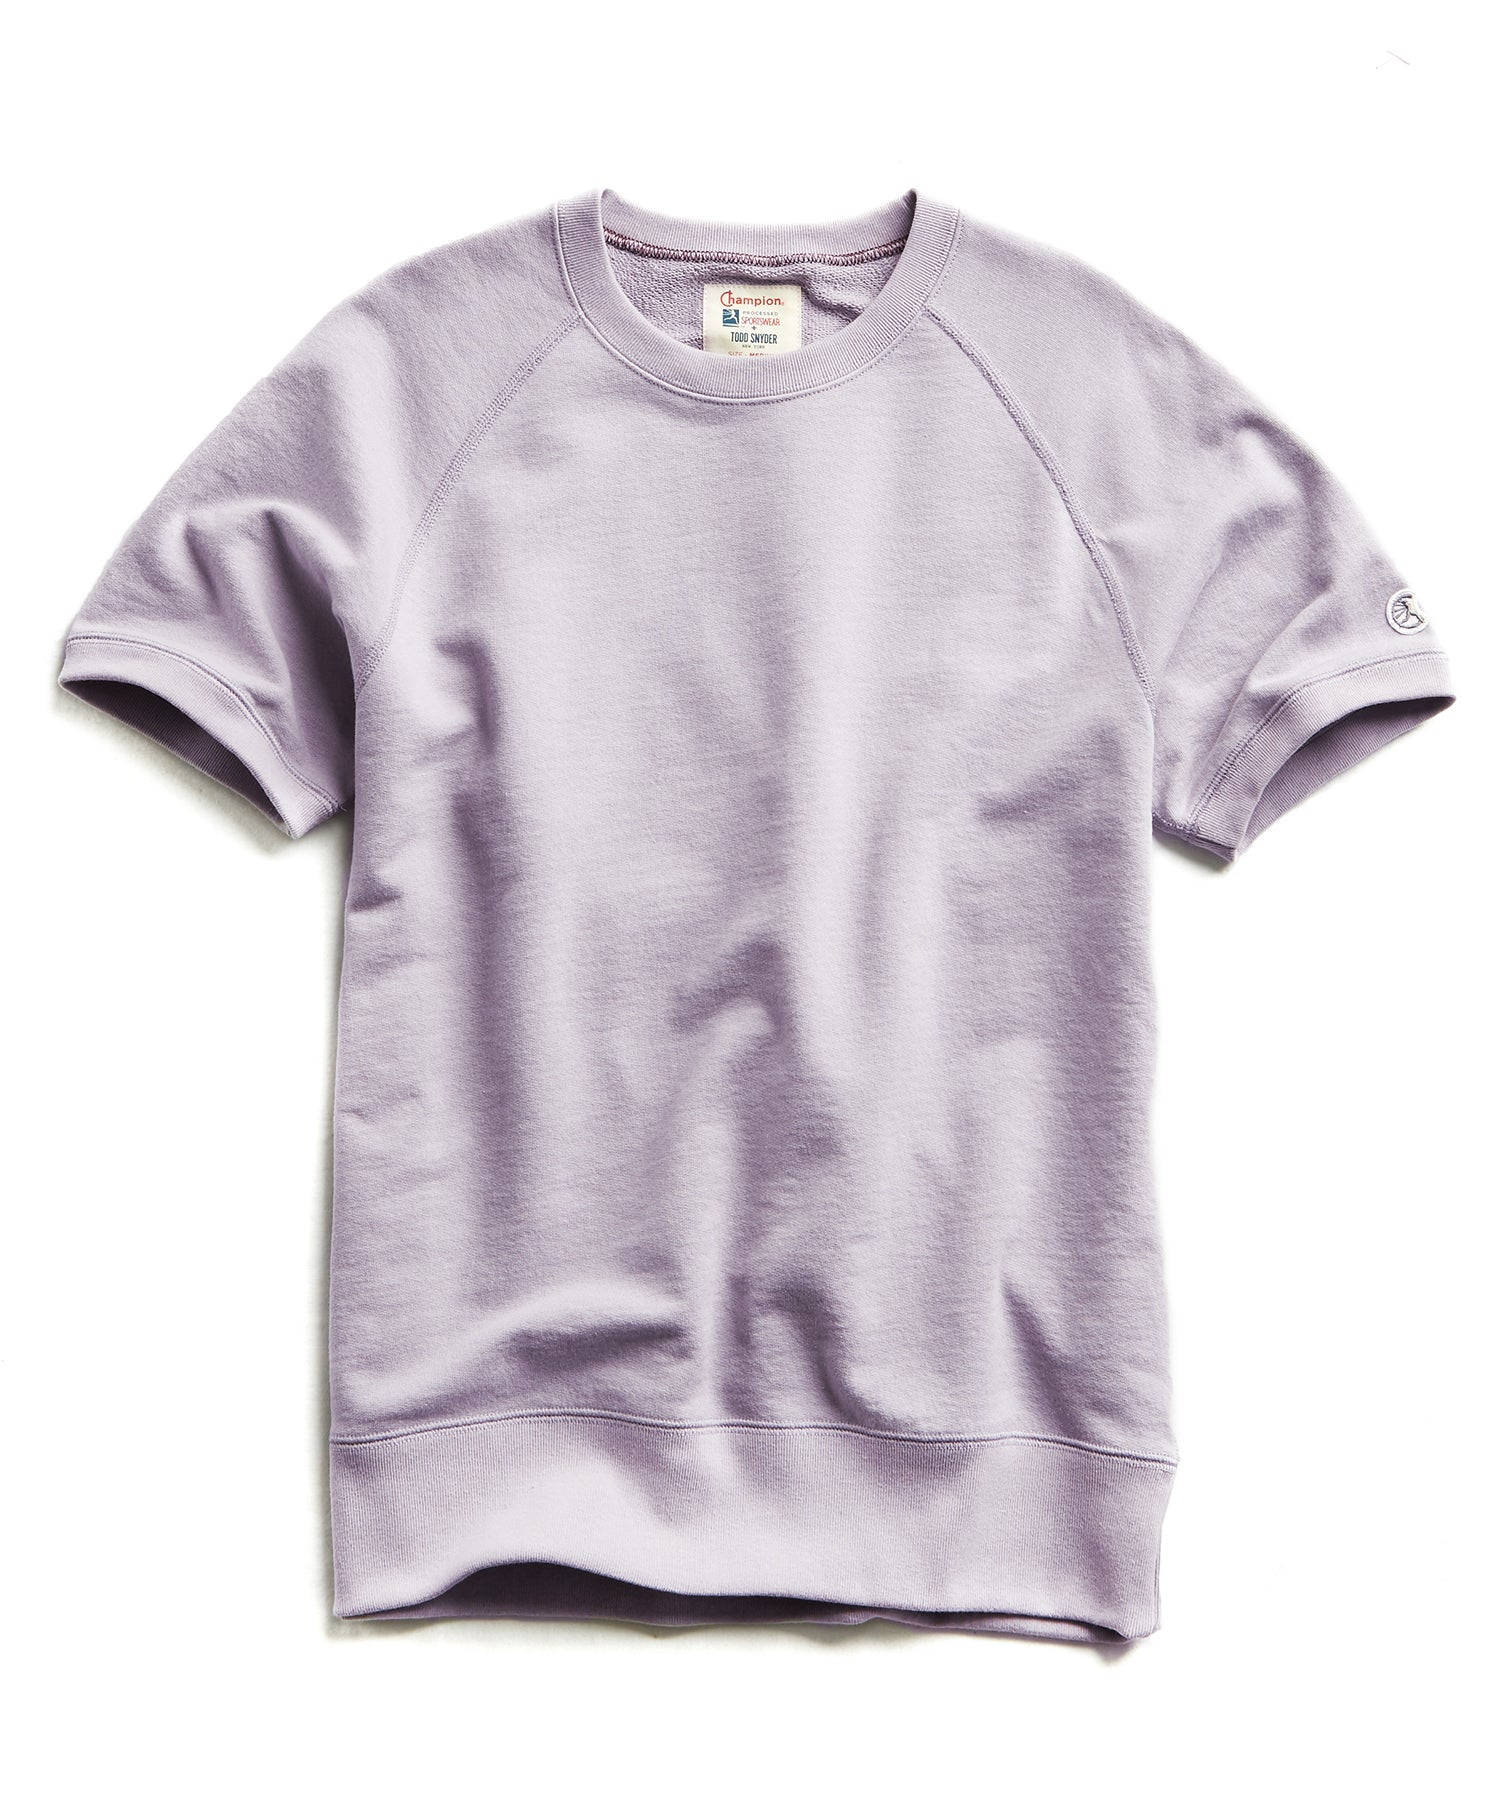 Terry Short Sleeve Sweatshirt in Wisteria